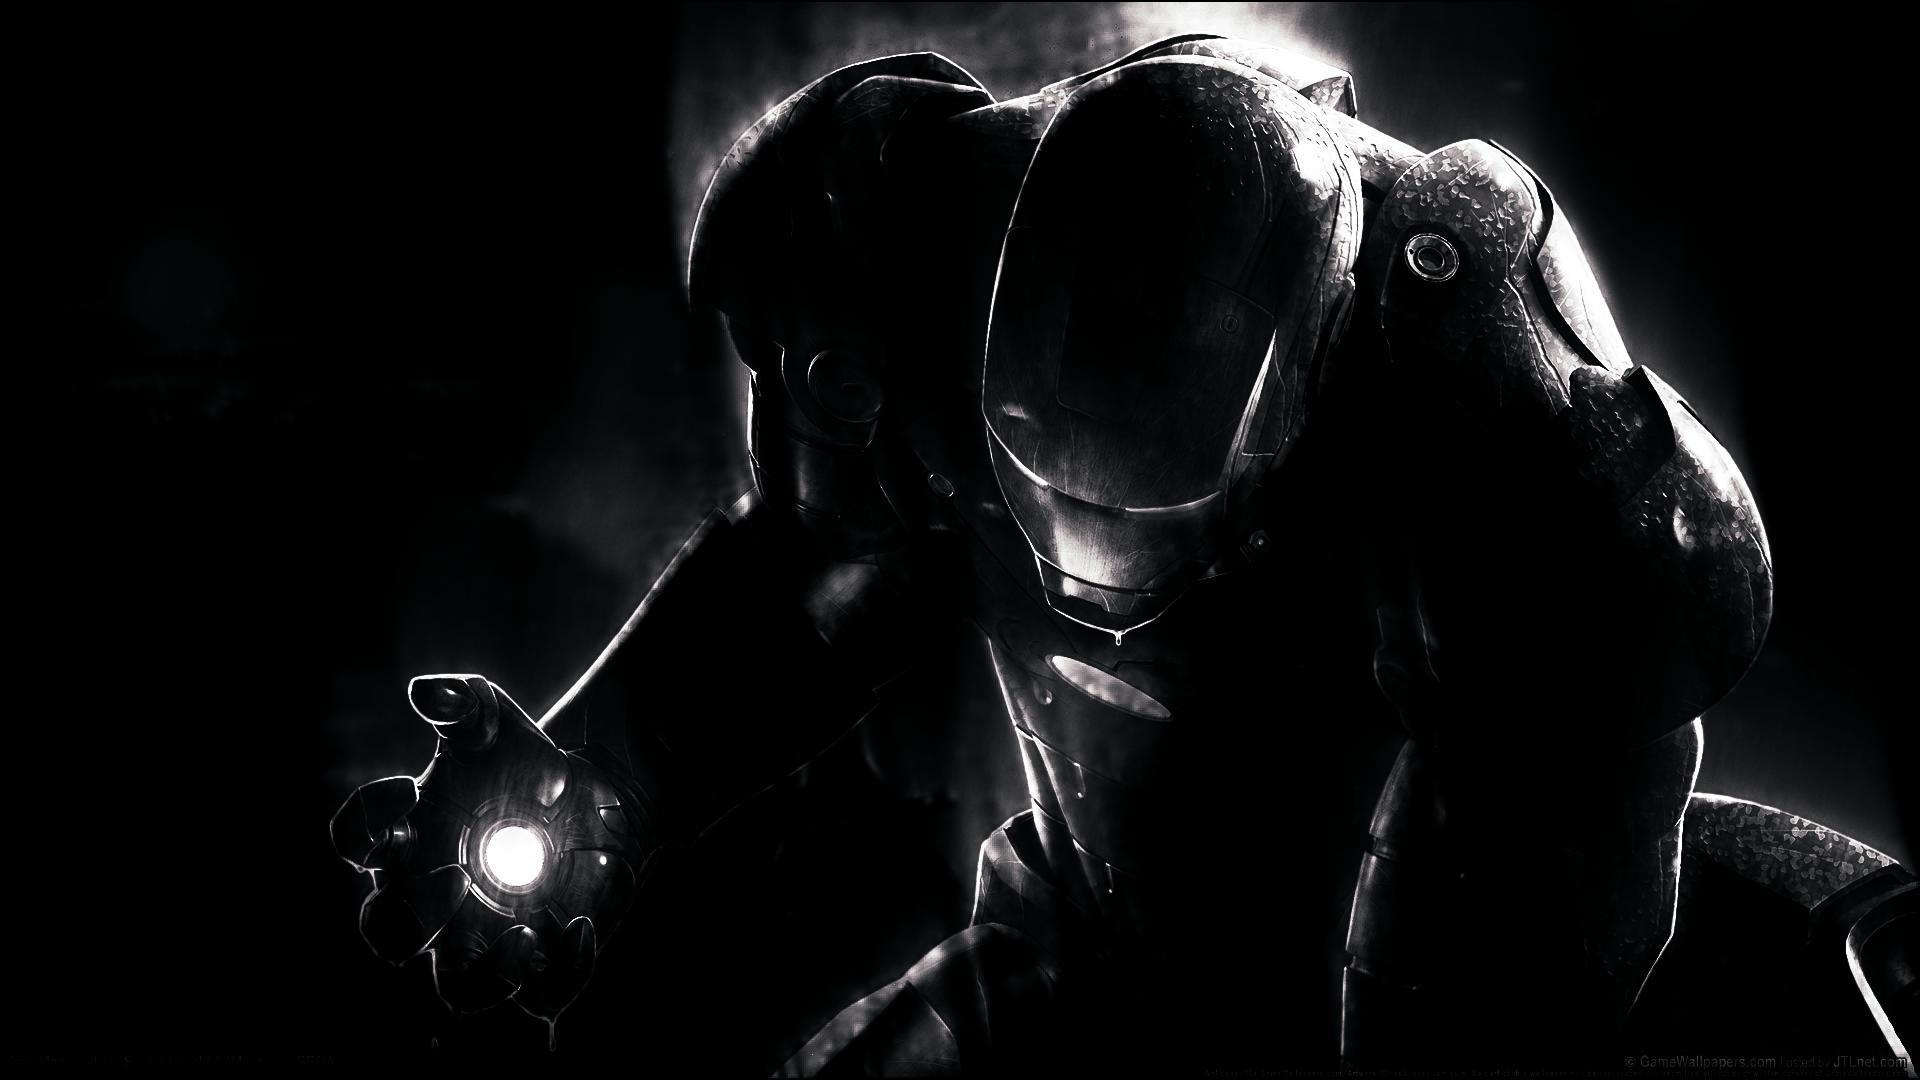 Wallpapers For > Iron Man Wallpaper Hd For Iphone